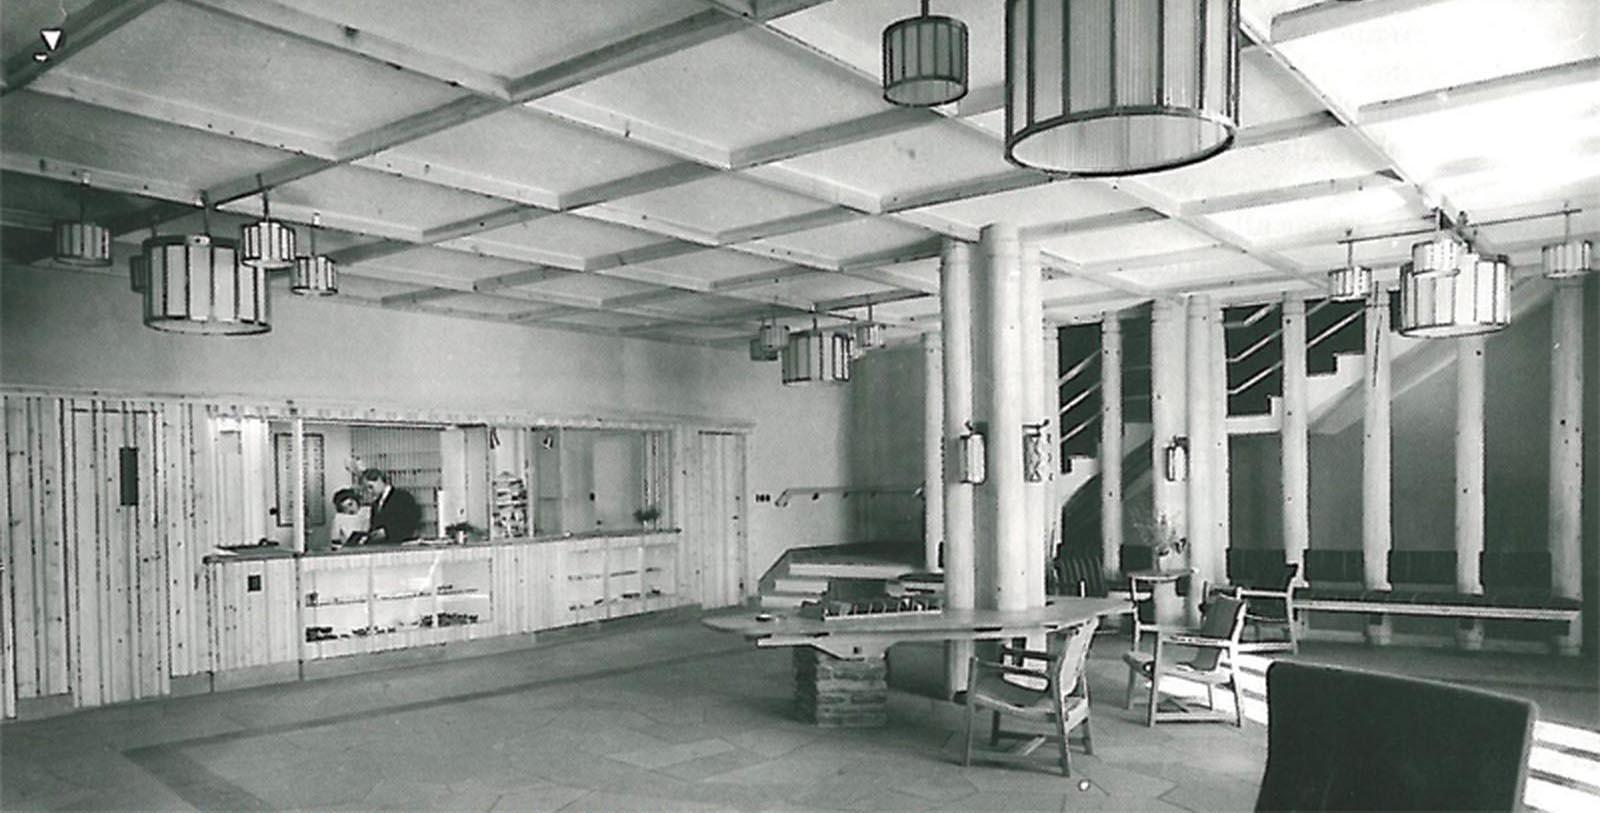 Historic Image of Hotel Lobby at Roros Hotel, 1951, Member of Historic Hotels Worldwide, in Roros, Norway, Discover